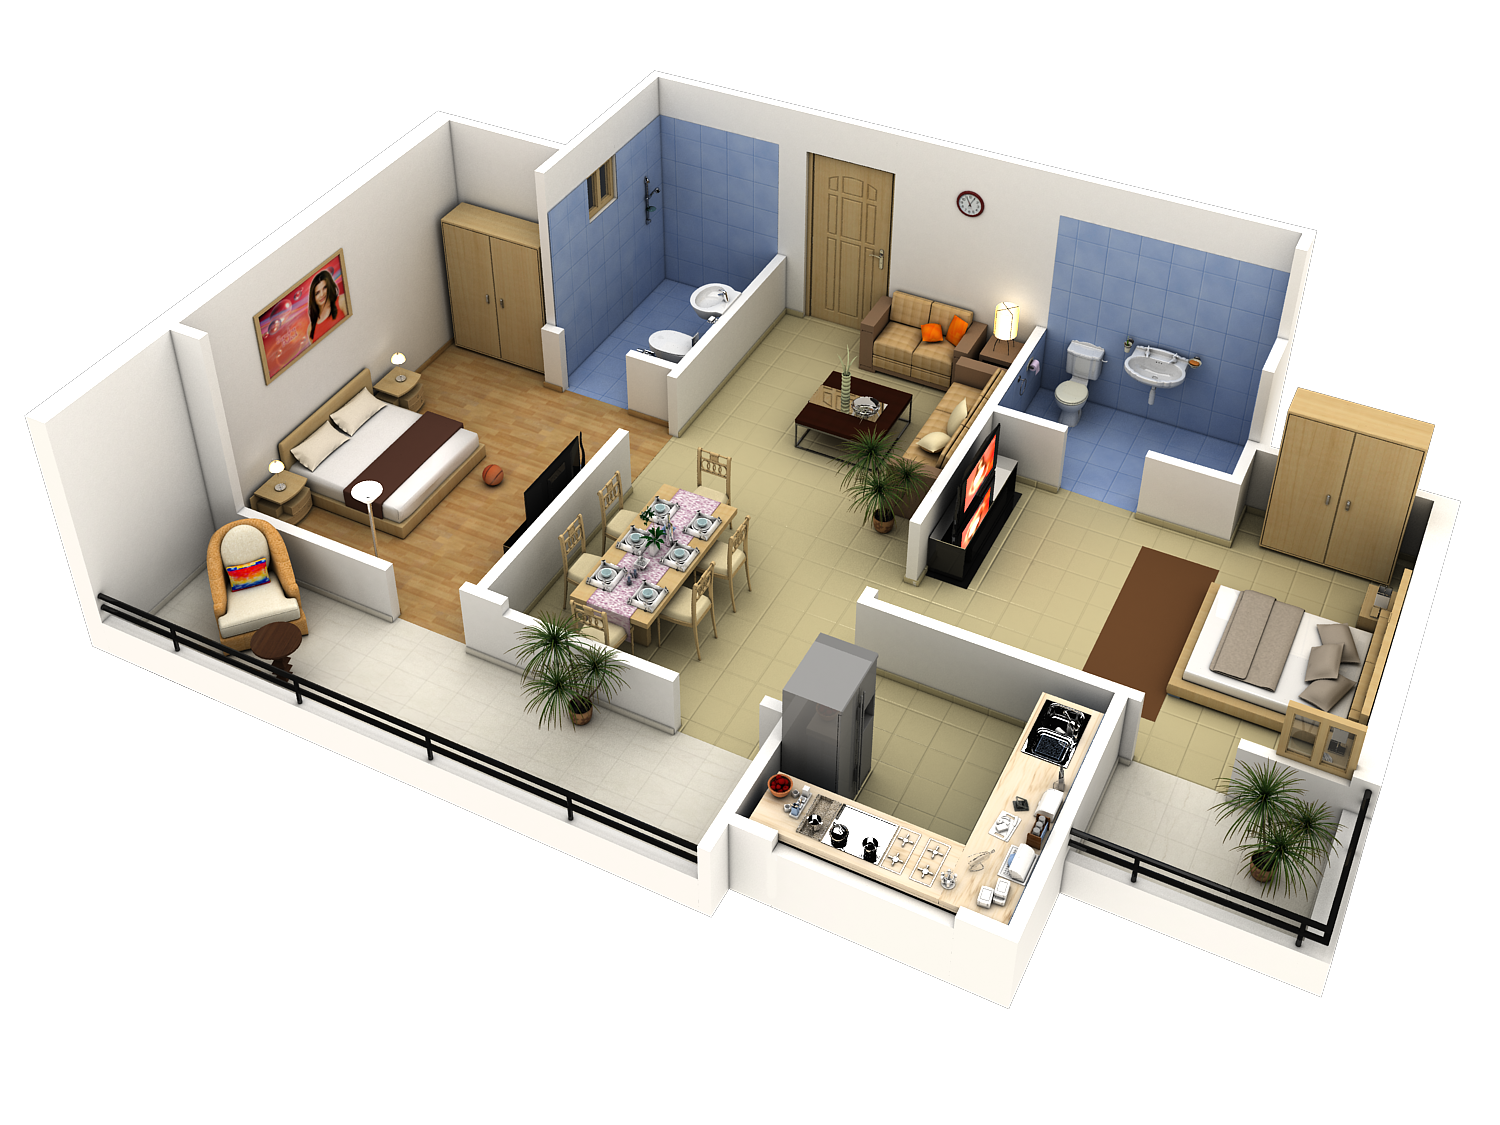 Apartment Renovation Plans